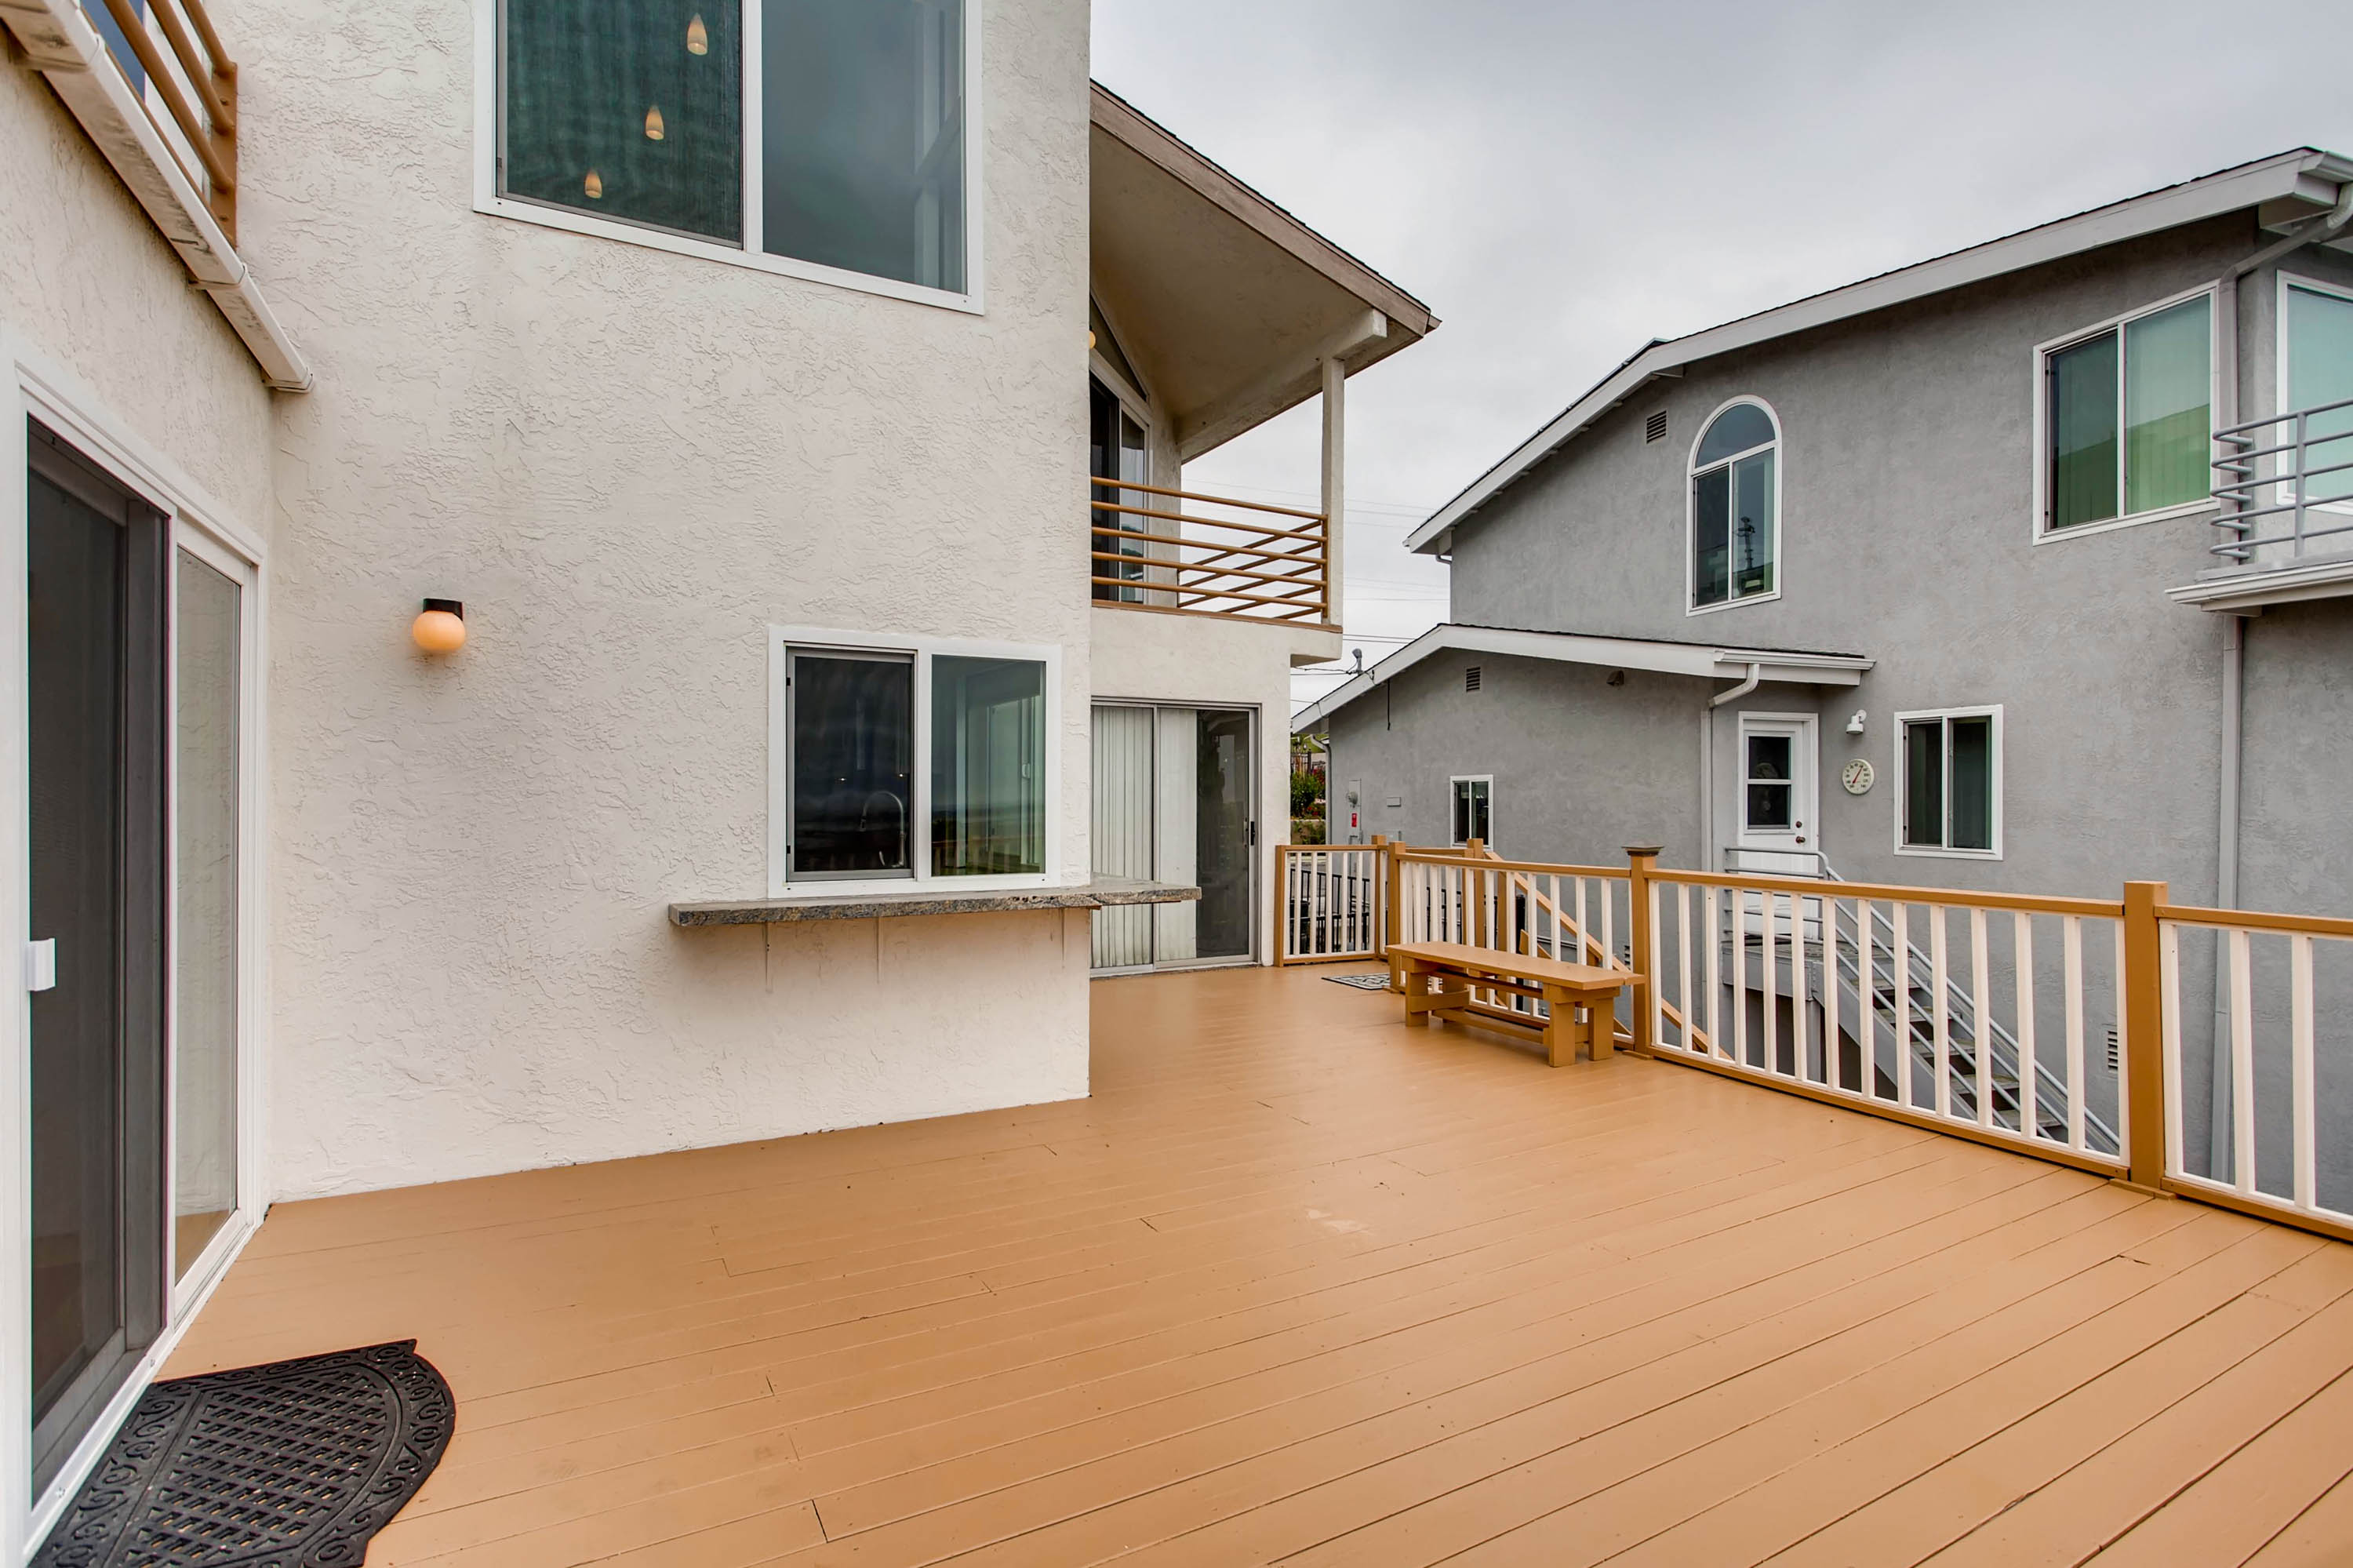 1430 Monitor Road, San Diego, CA 92110 Image #23